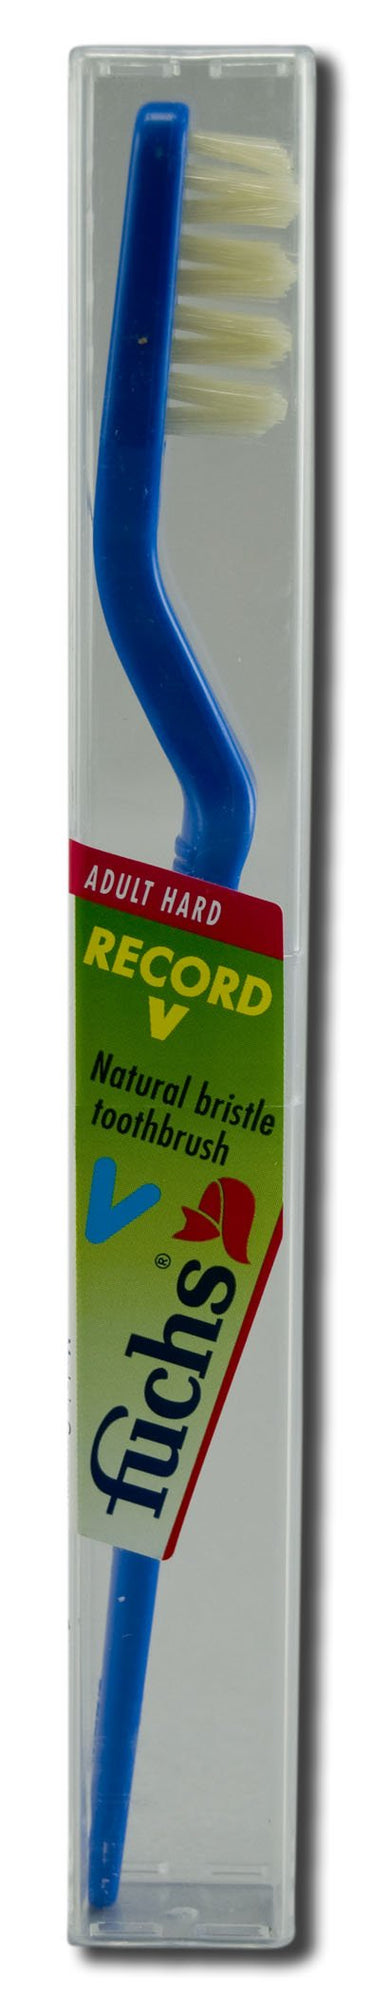 Fuchs Brushes, Natural Bristle Record V Hard Adult, 1 Count